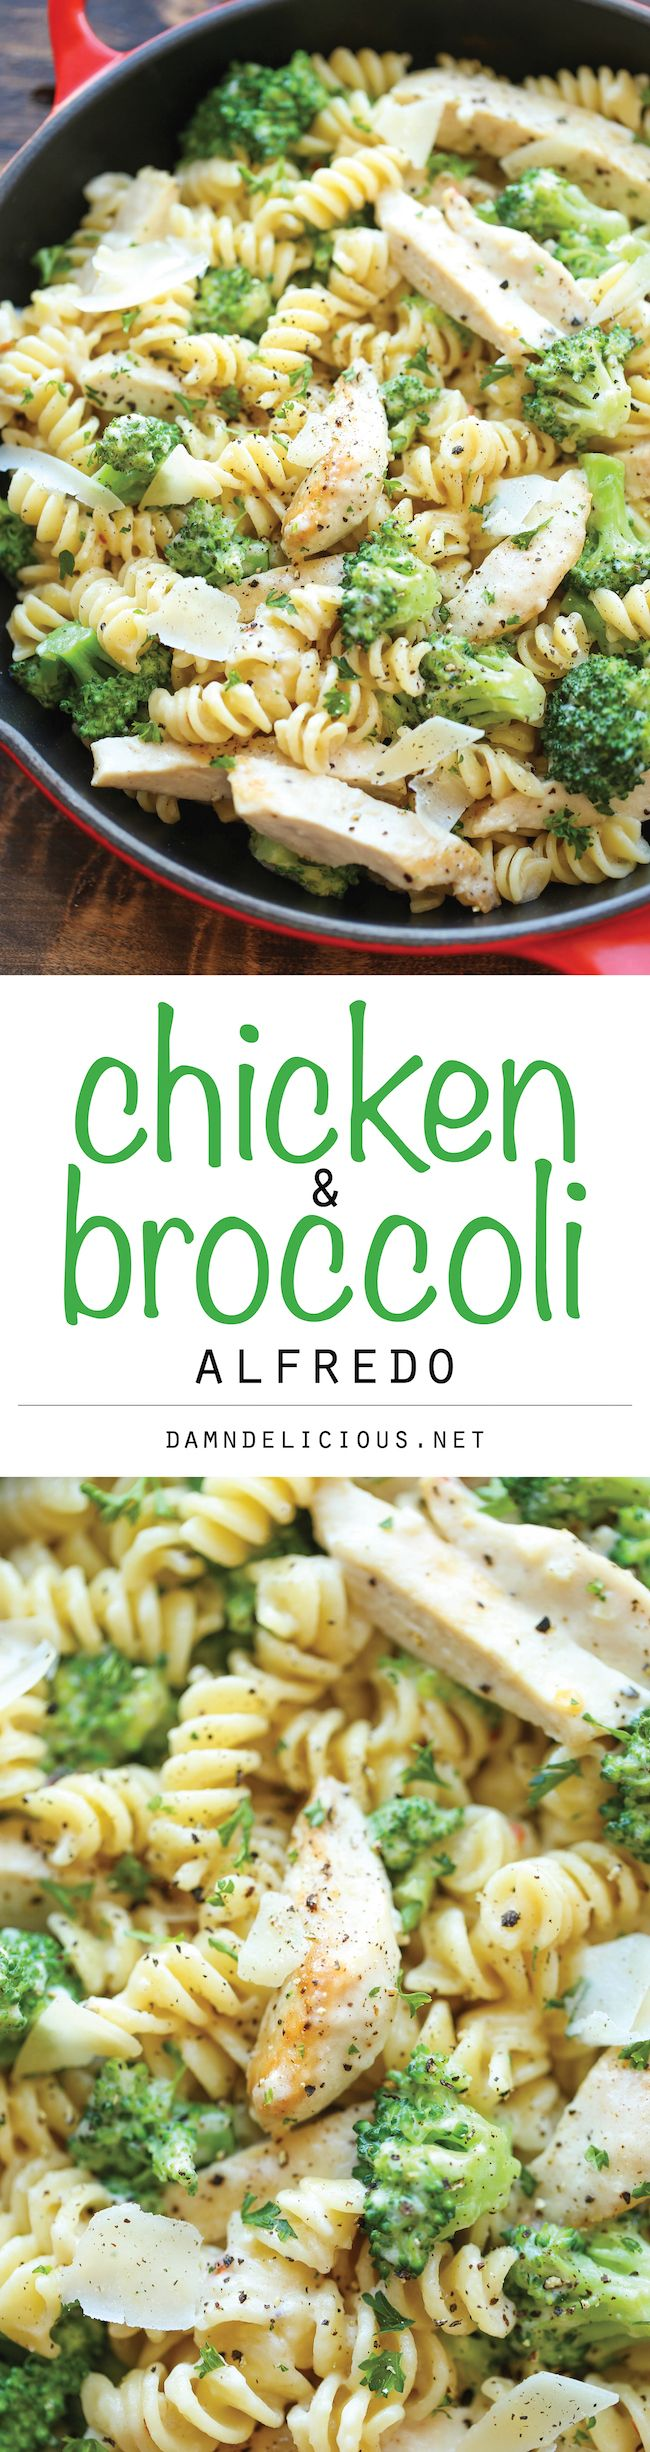 in whip weeknights  red simple creamy   Chicken minutes busy up finish start to so to    those from Alfredo and for just air so   jordan buy easy  perfect Broccoli and So fire